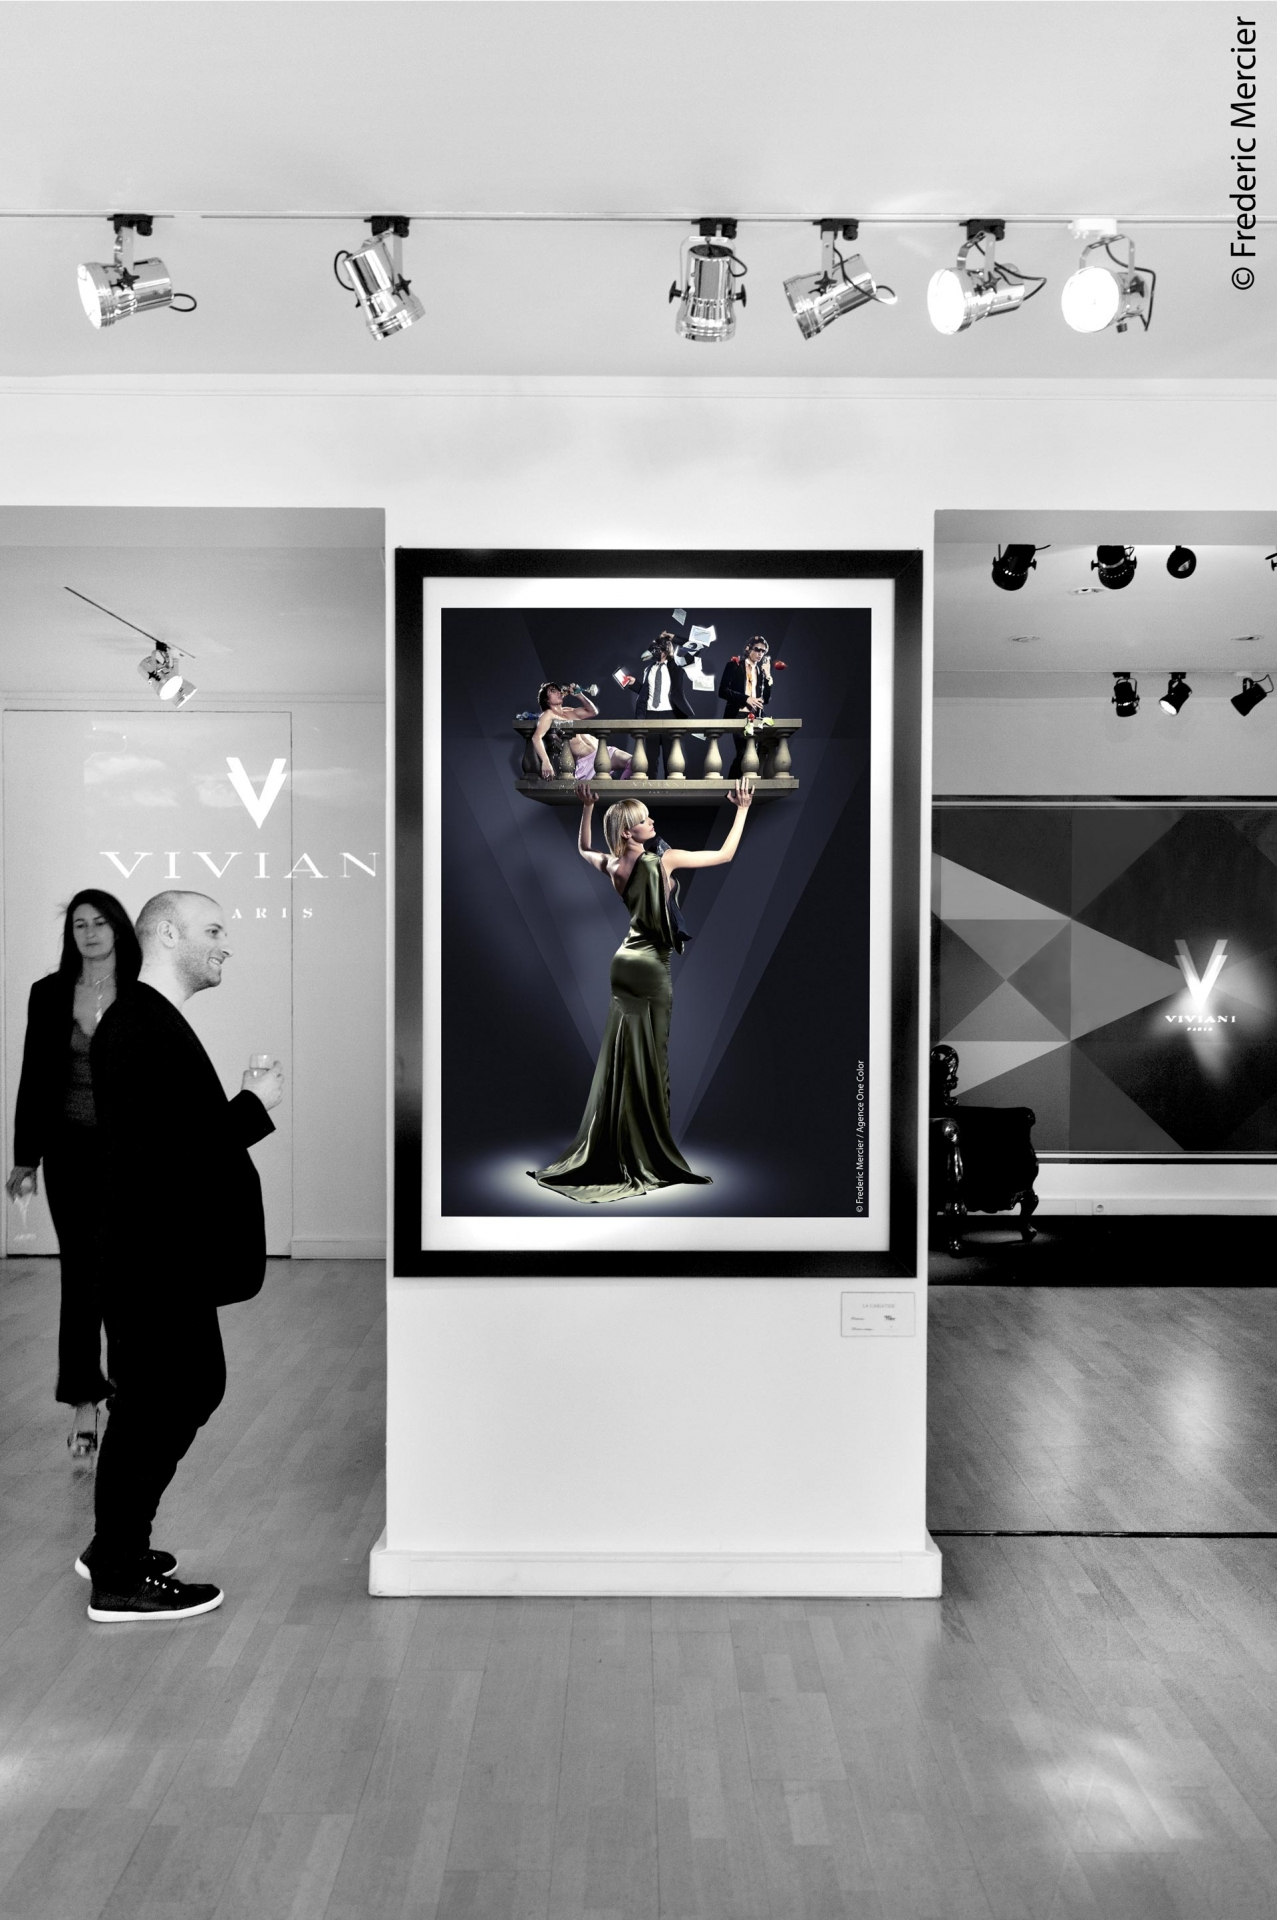 frederic mercier fashion photographer one color press expositions viviani paris